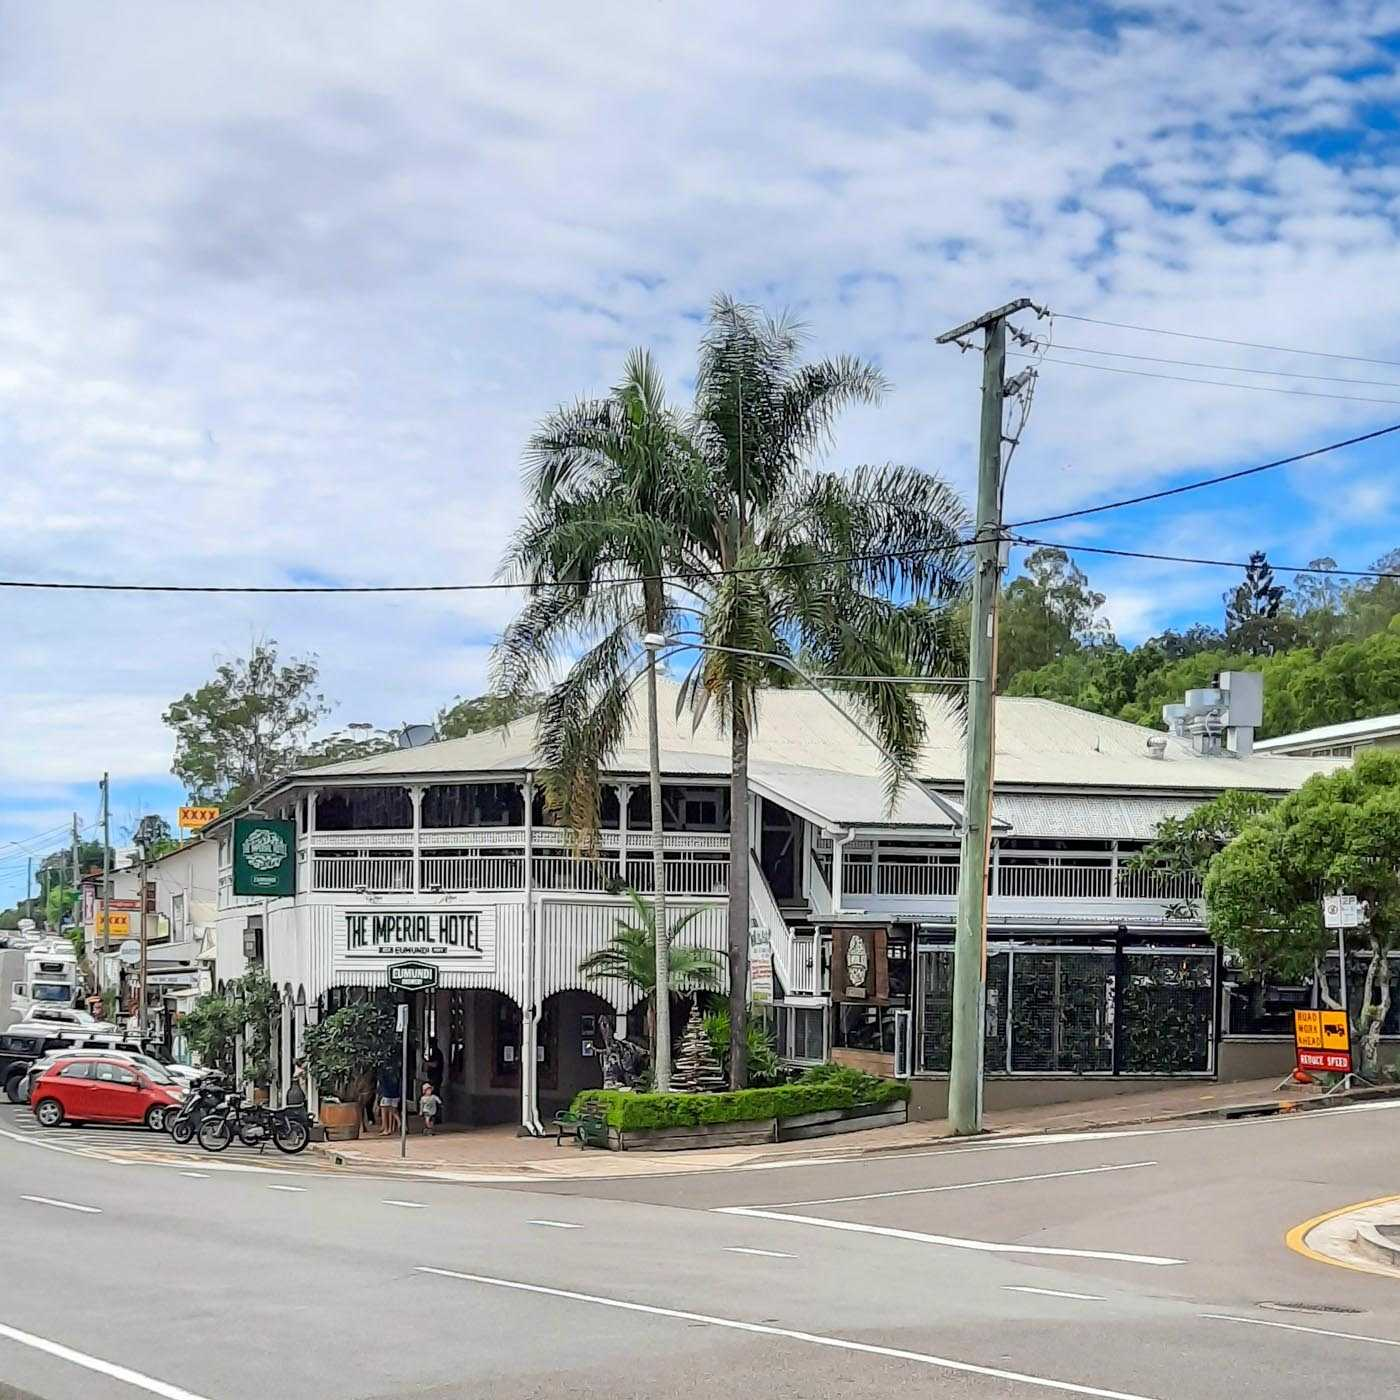 Eumundi Town. It has a certain old-fashioned vibe, similar to places like Montville/Maleny; that is to say the buildings have a kind of 'period' design in terms of balconies, roofing, wall design and colour, etc.